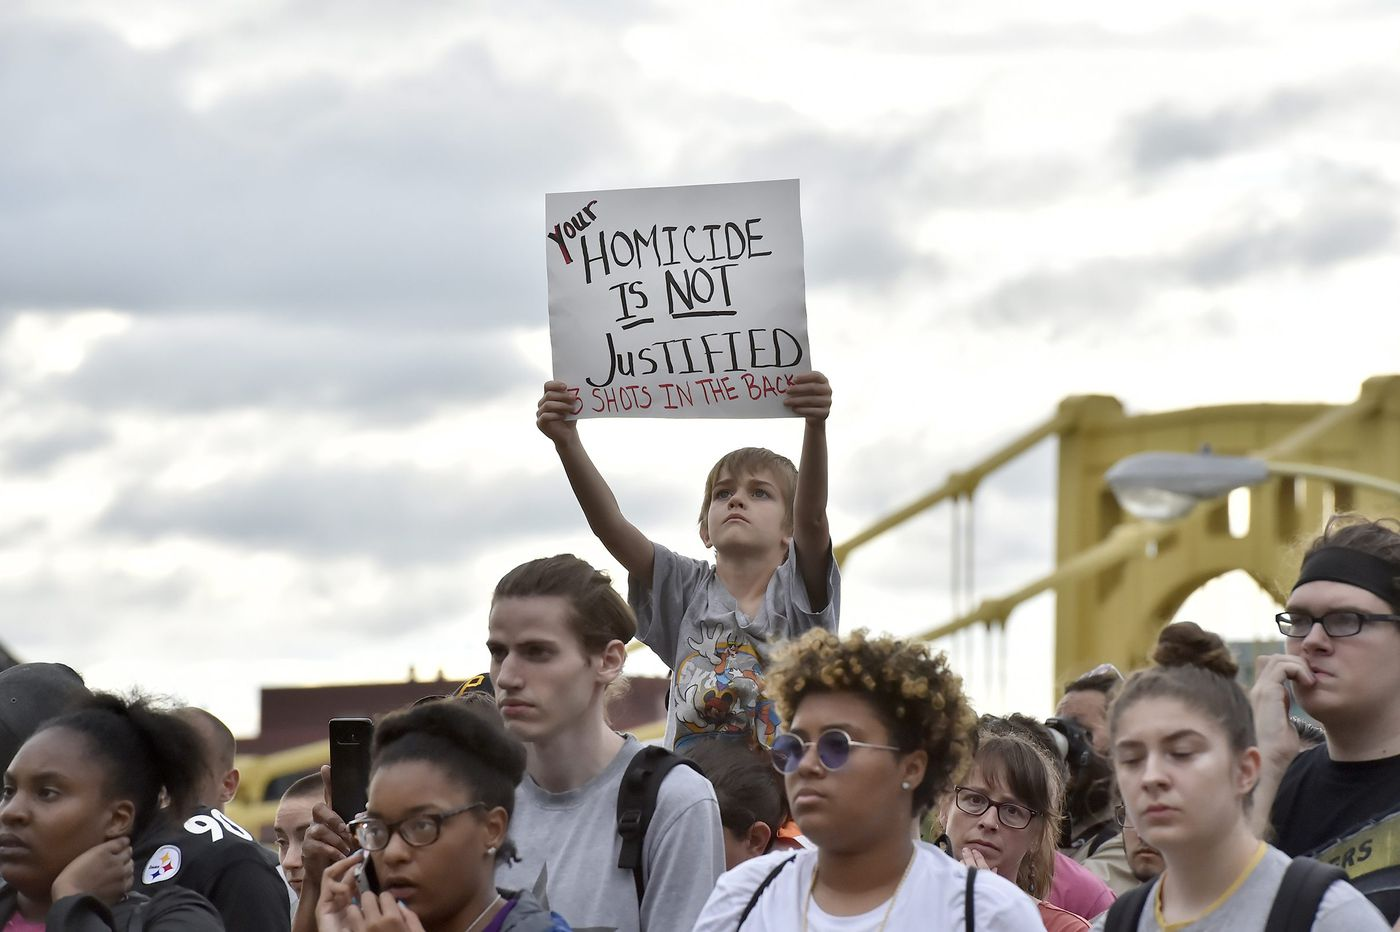 Antwon Rose's death reminds us that in many police departments, deadly force is too routine | Editorial